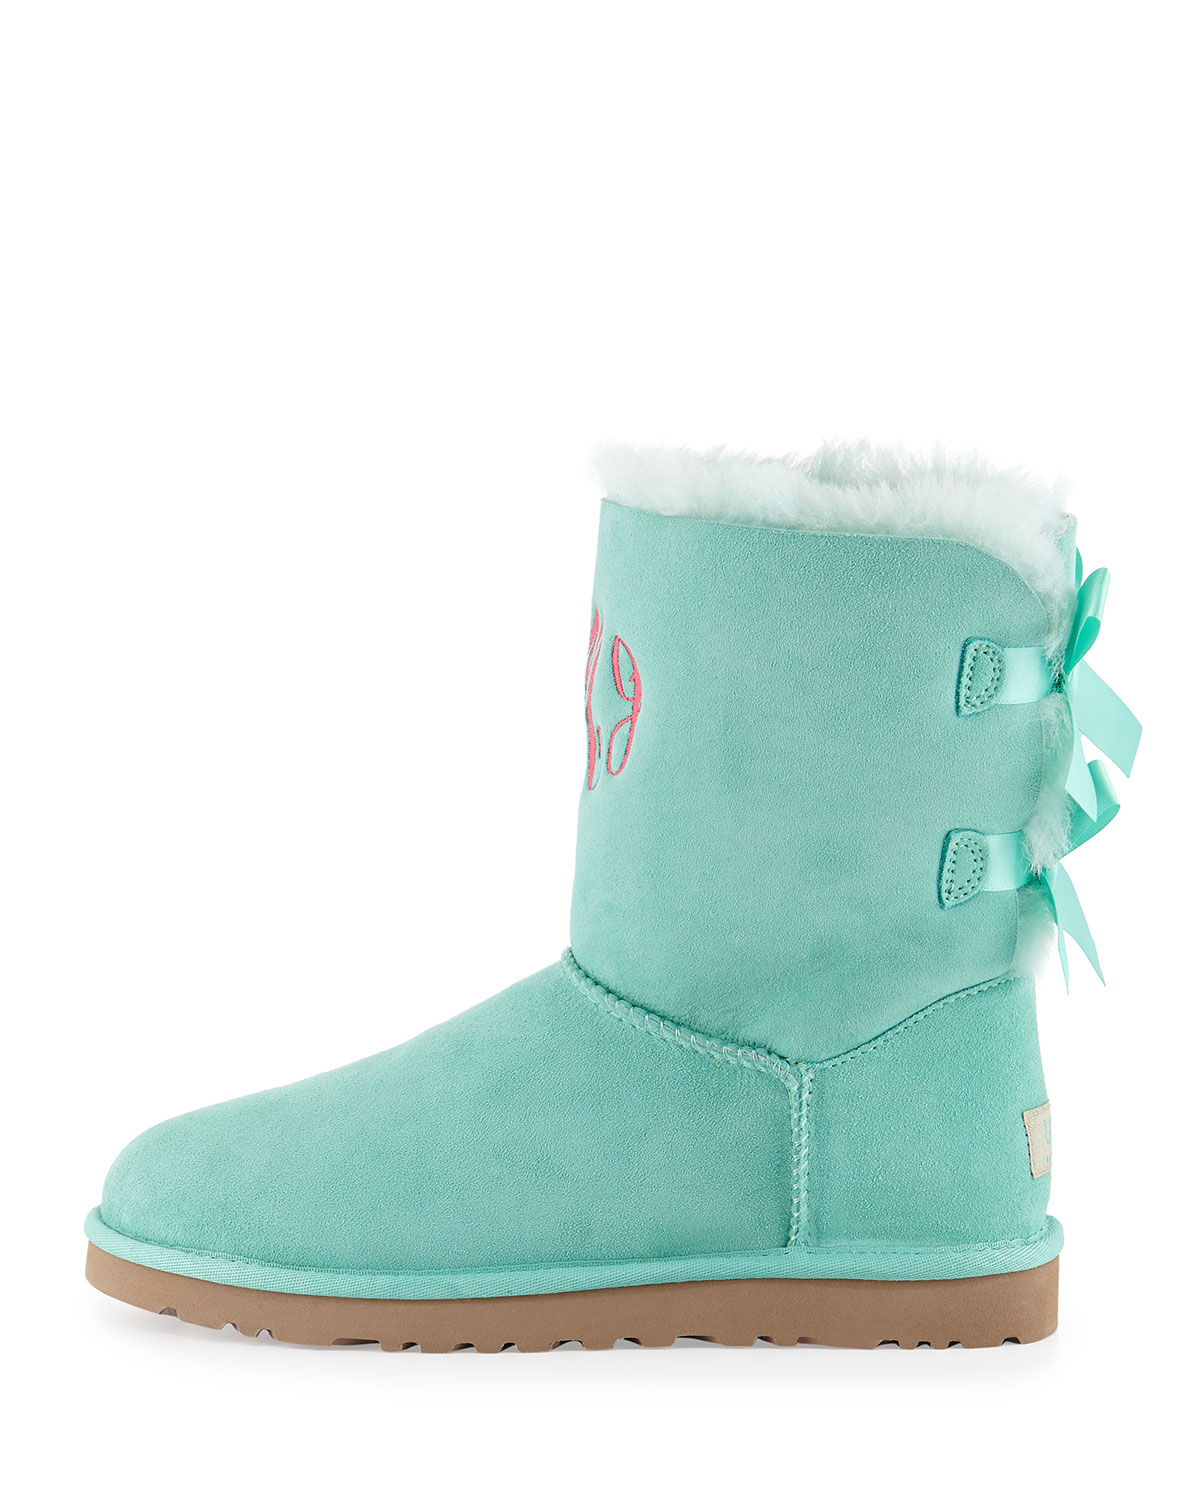 8a81f346a95 UGG Blue Bailey Bow-Back Short Boot